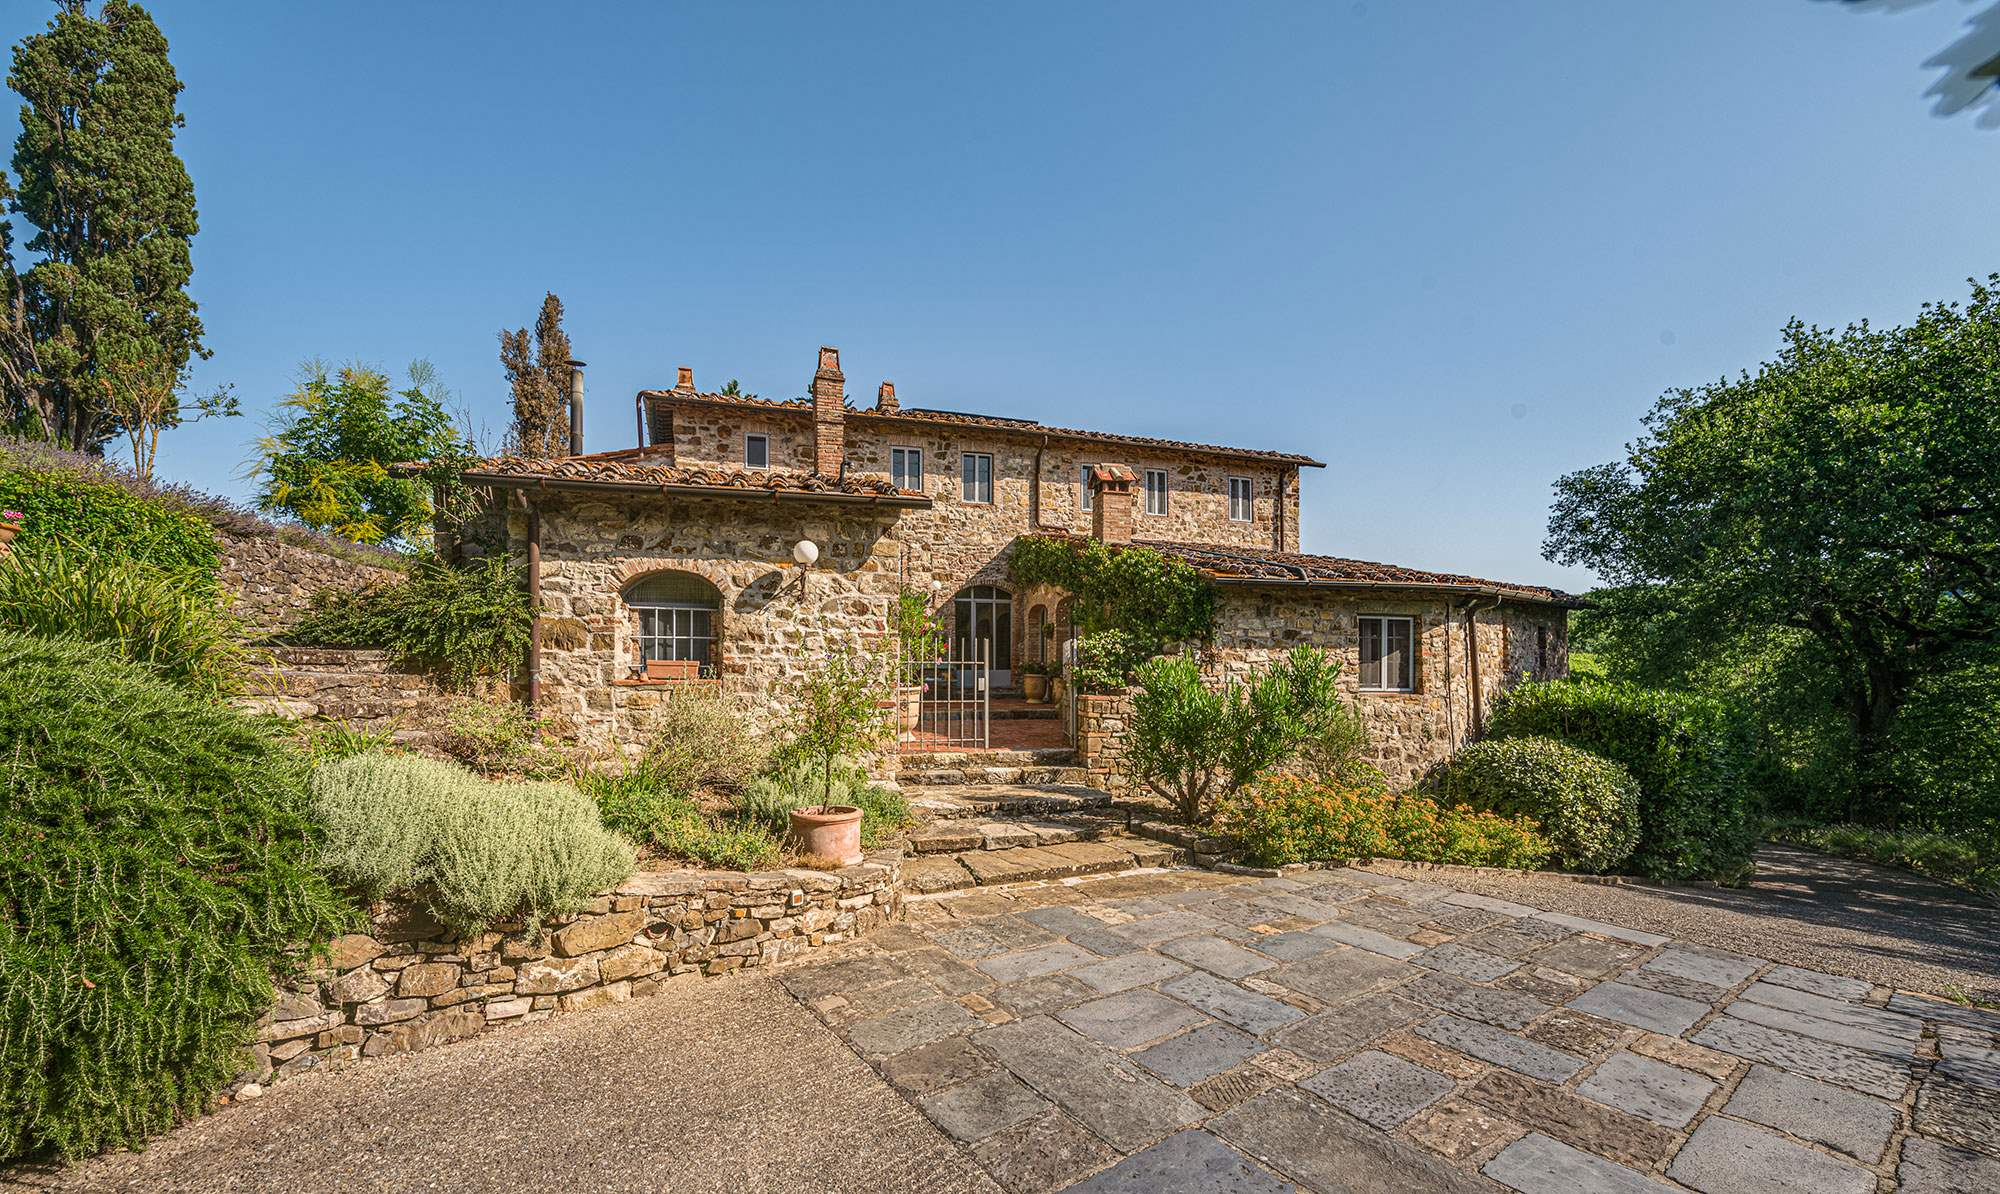 Villa Claudia, 5 Bedroom rate, 5 bedroom villa in Chianti & Countryside, Tuscany Photo #3